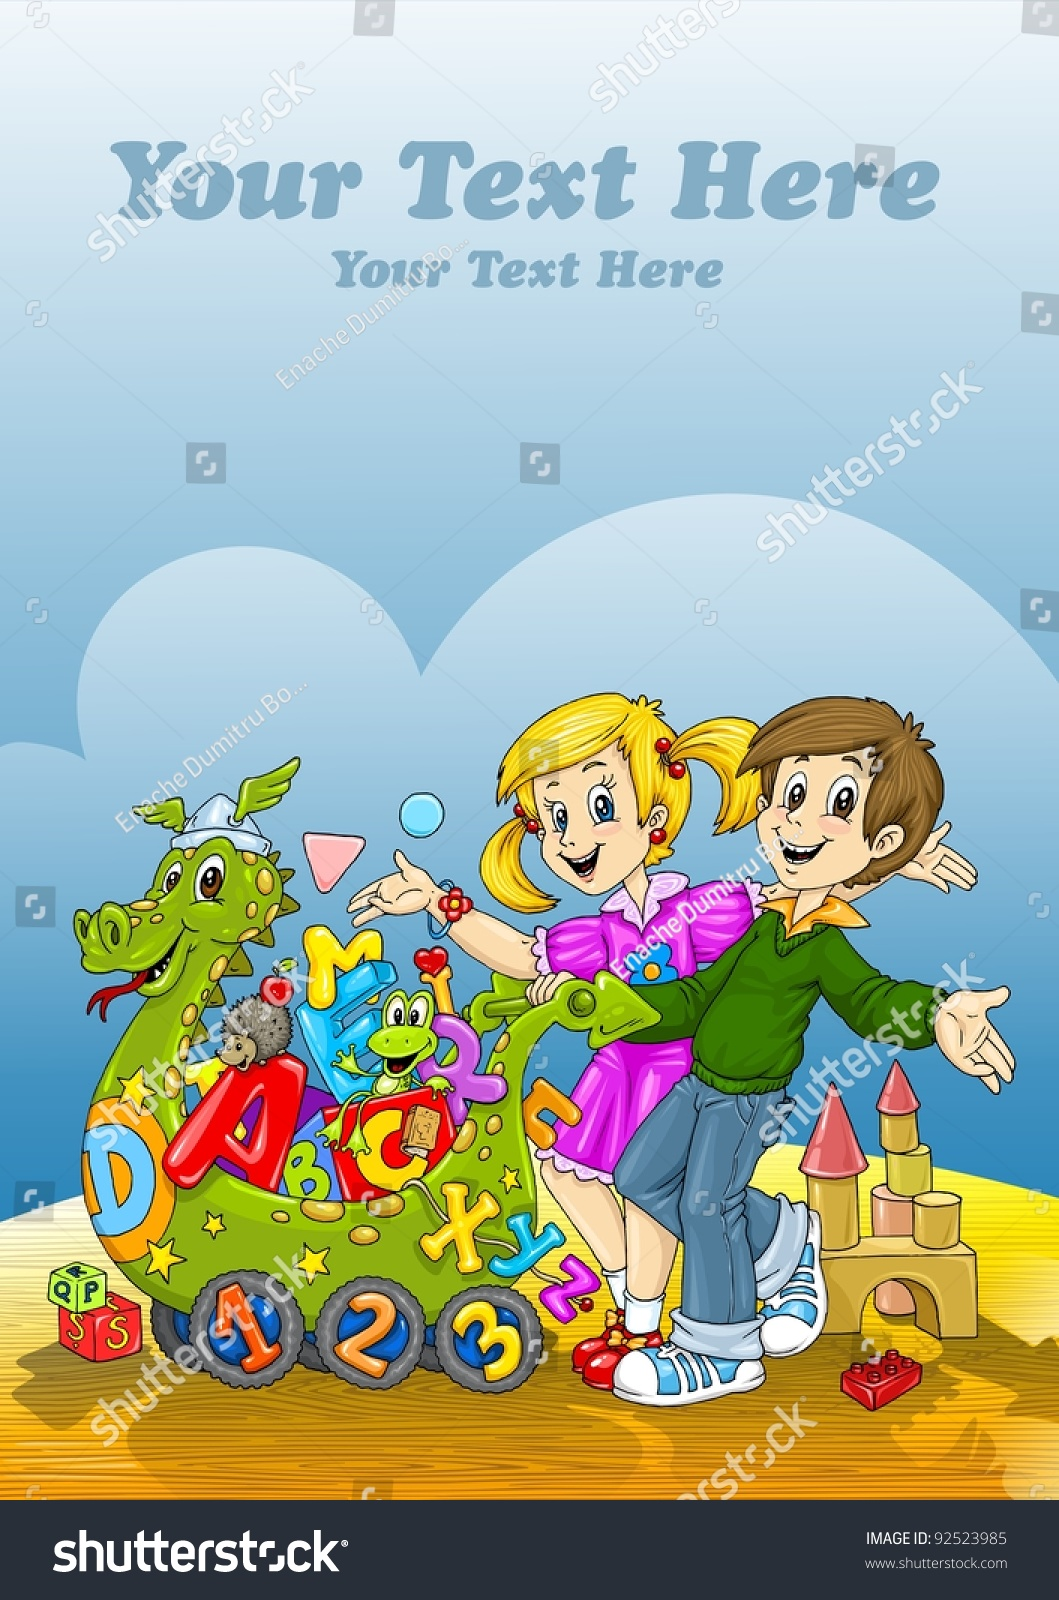 Kids Book Cover Background : Happy kids toys world book cover stock illustration